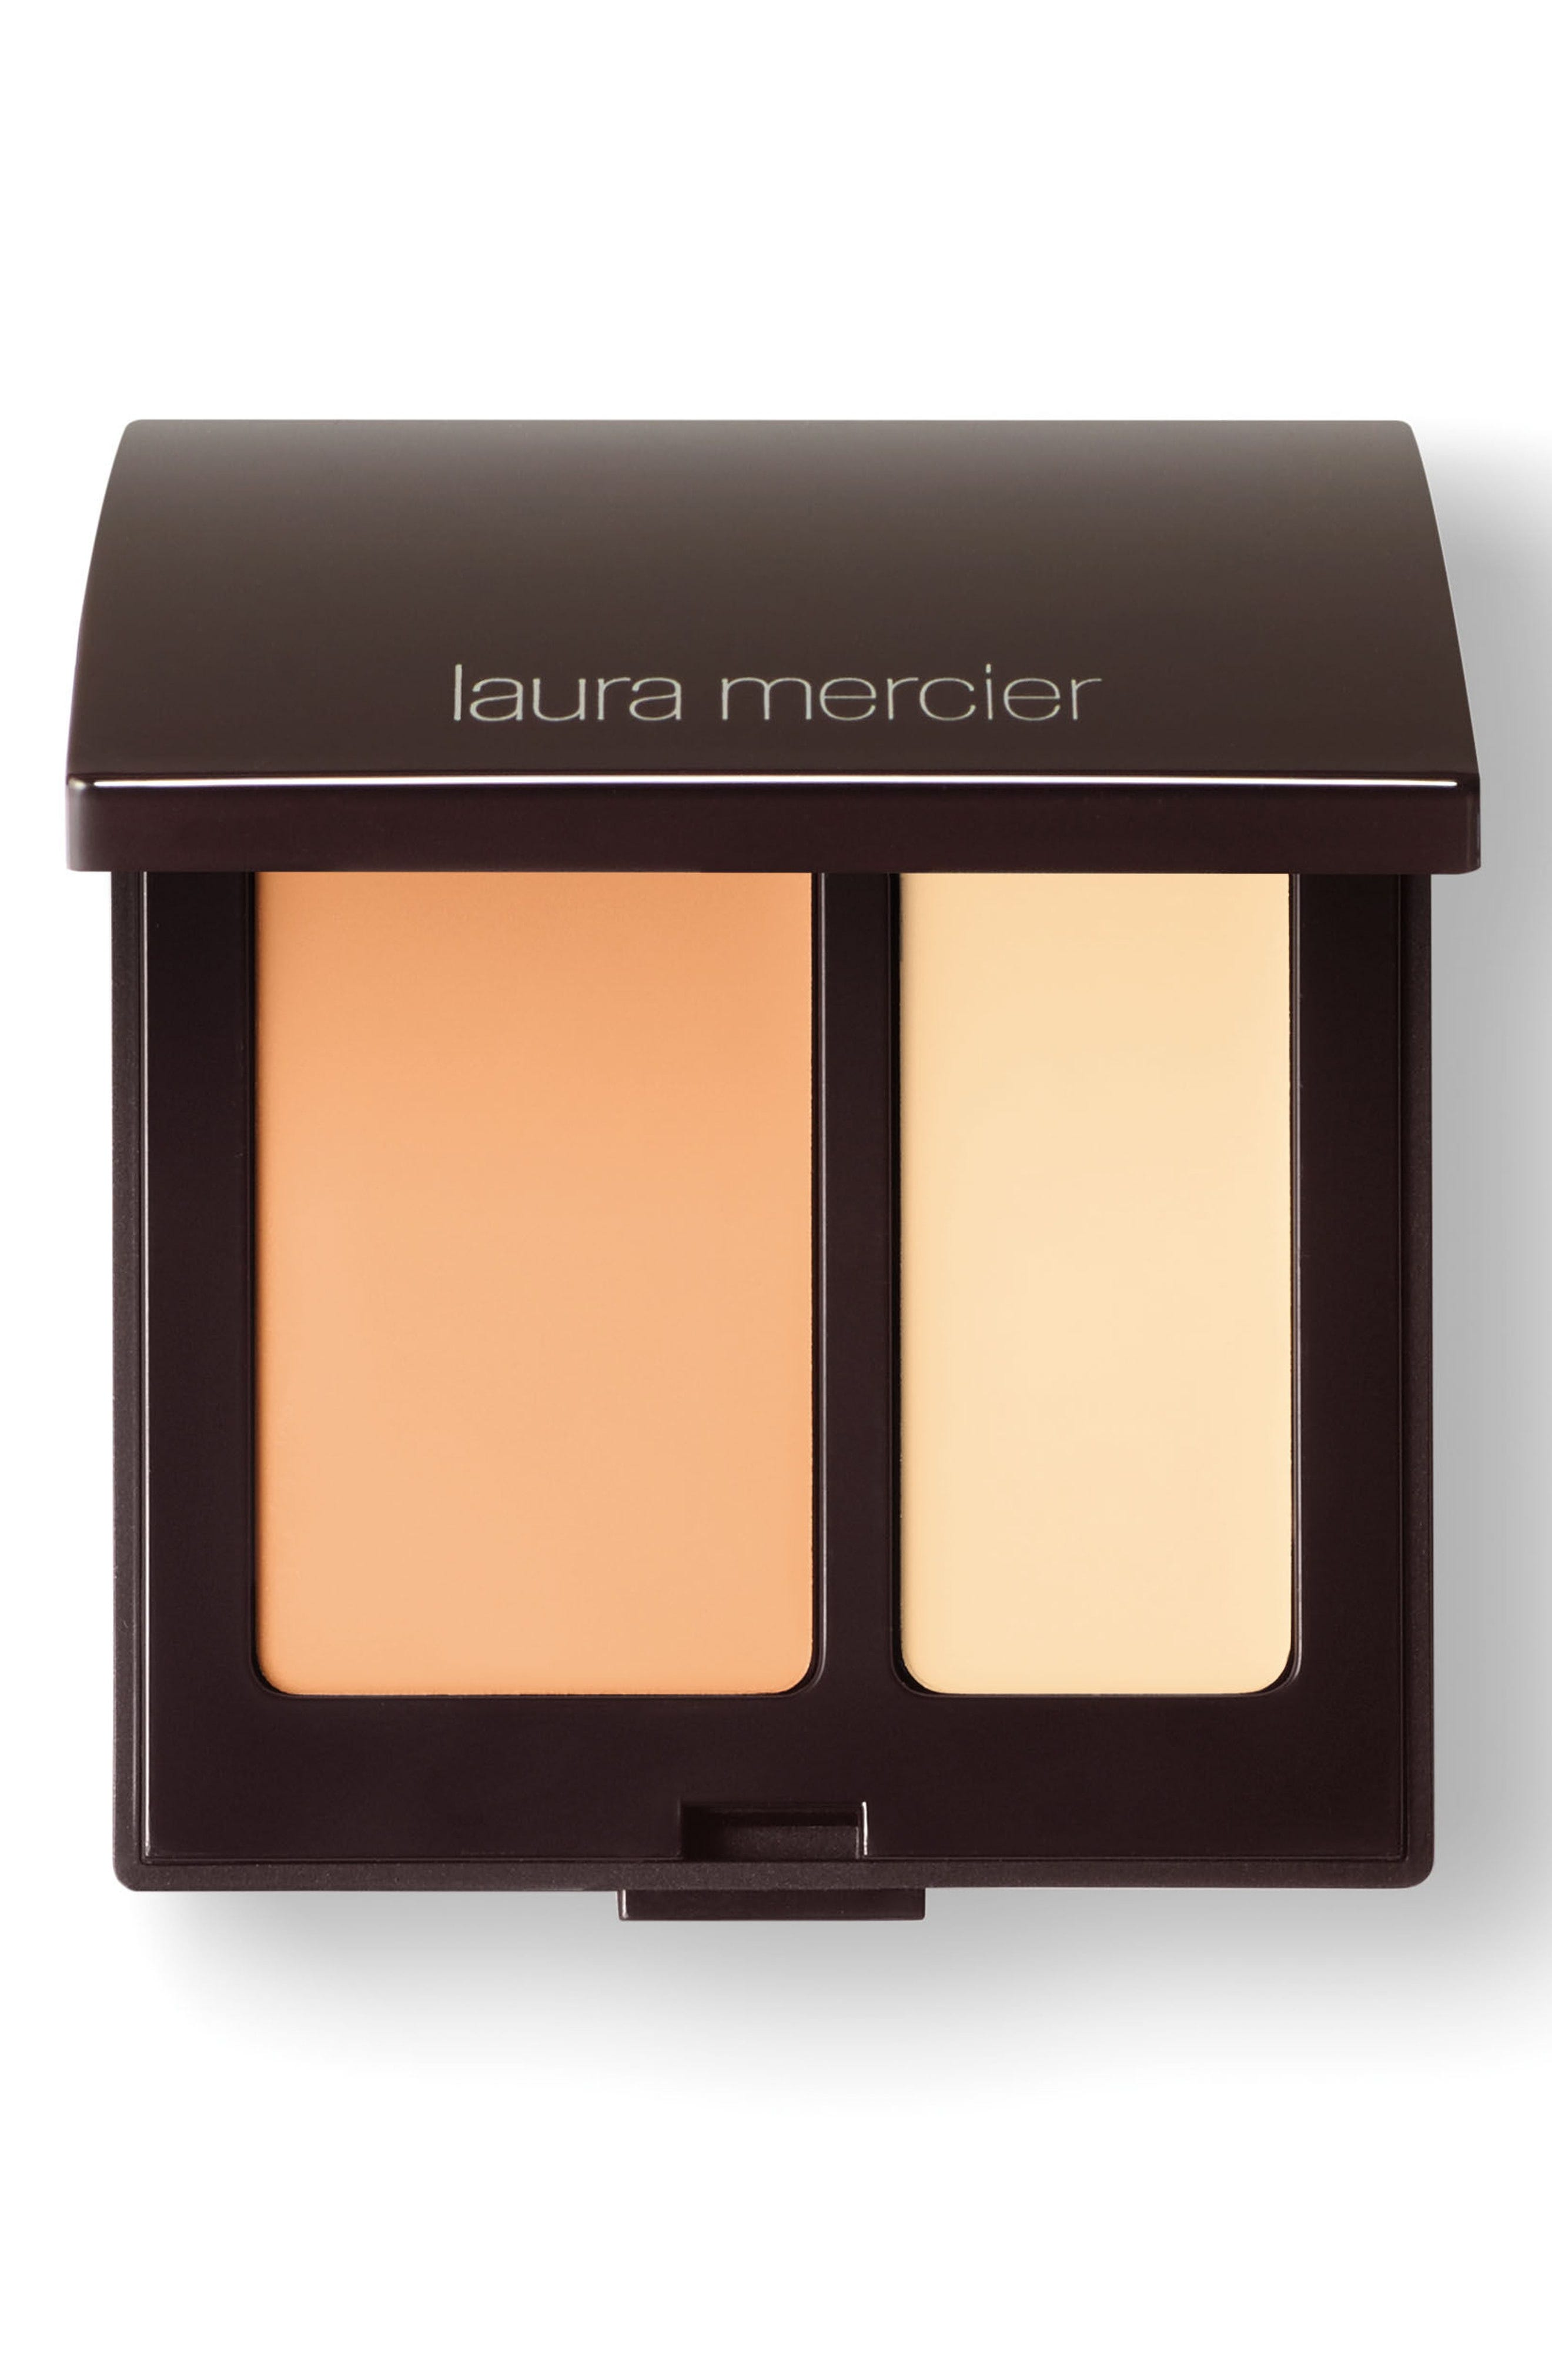 The Best Concealers For All Your Skin Concerns